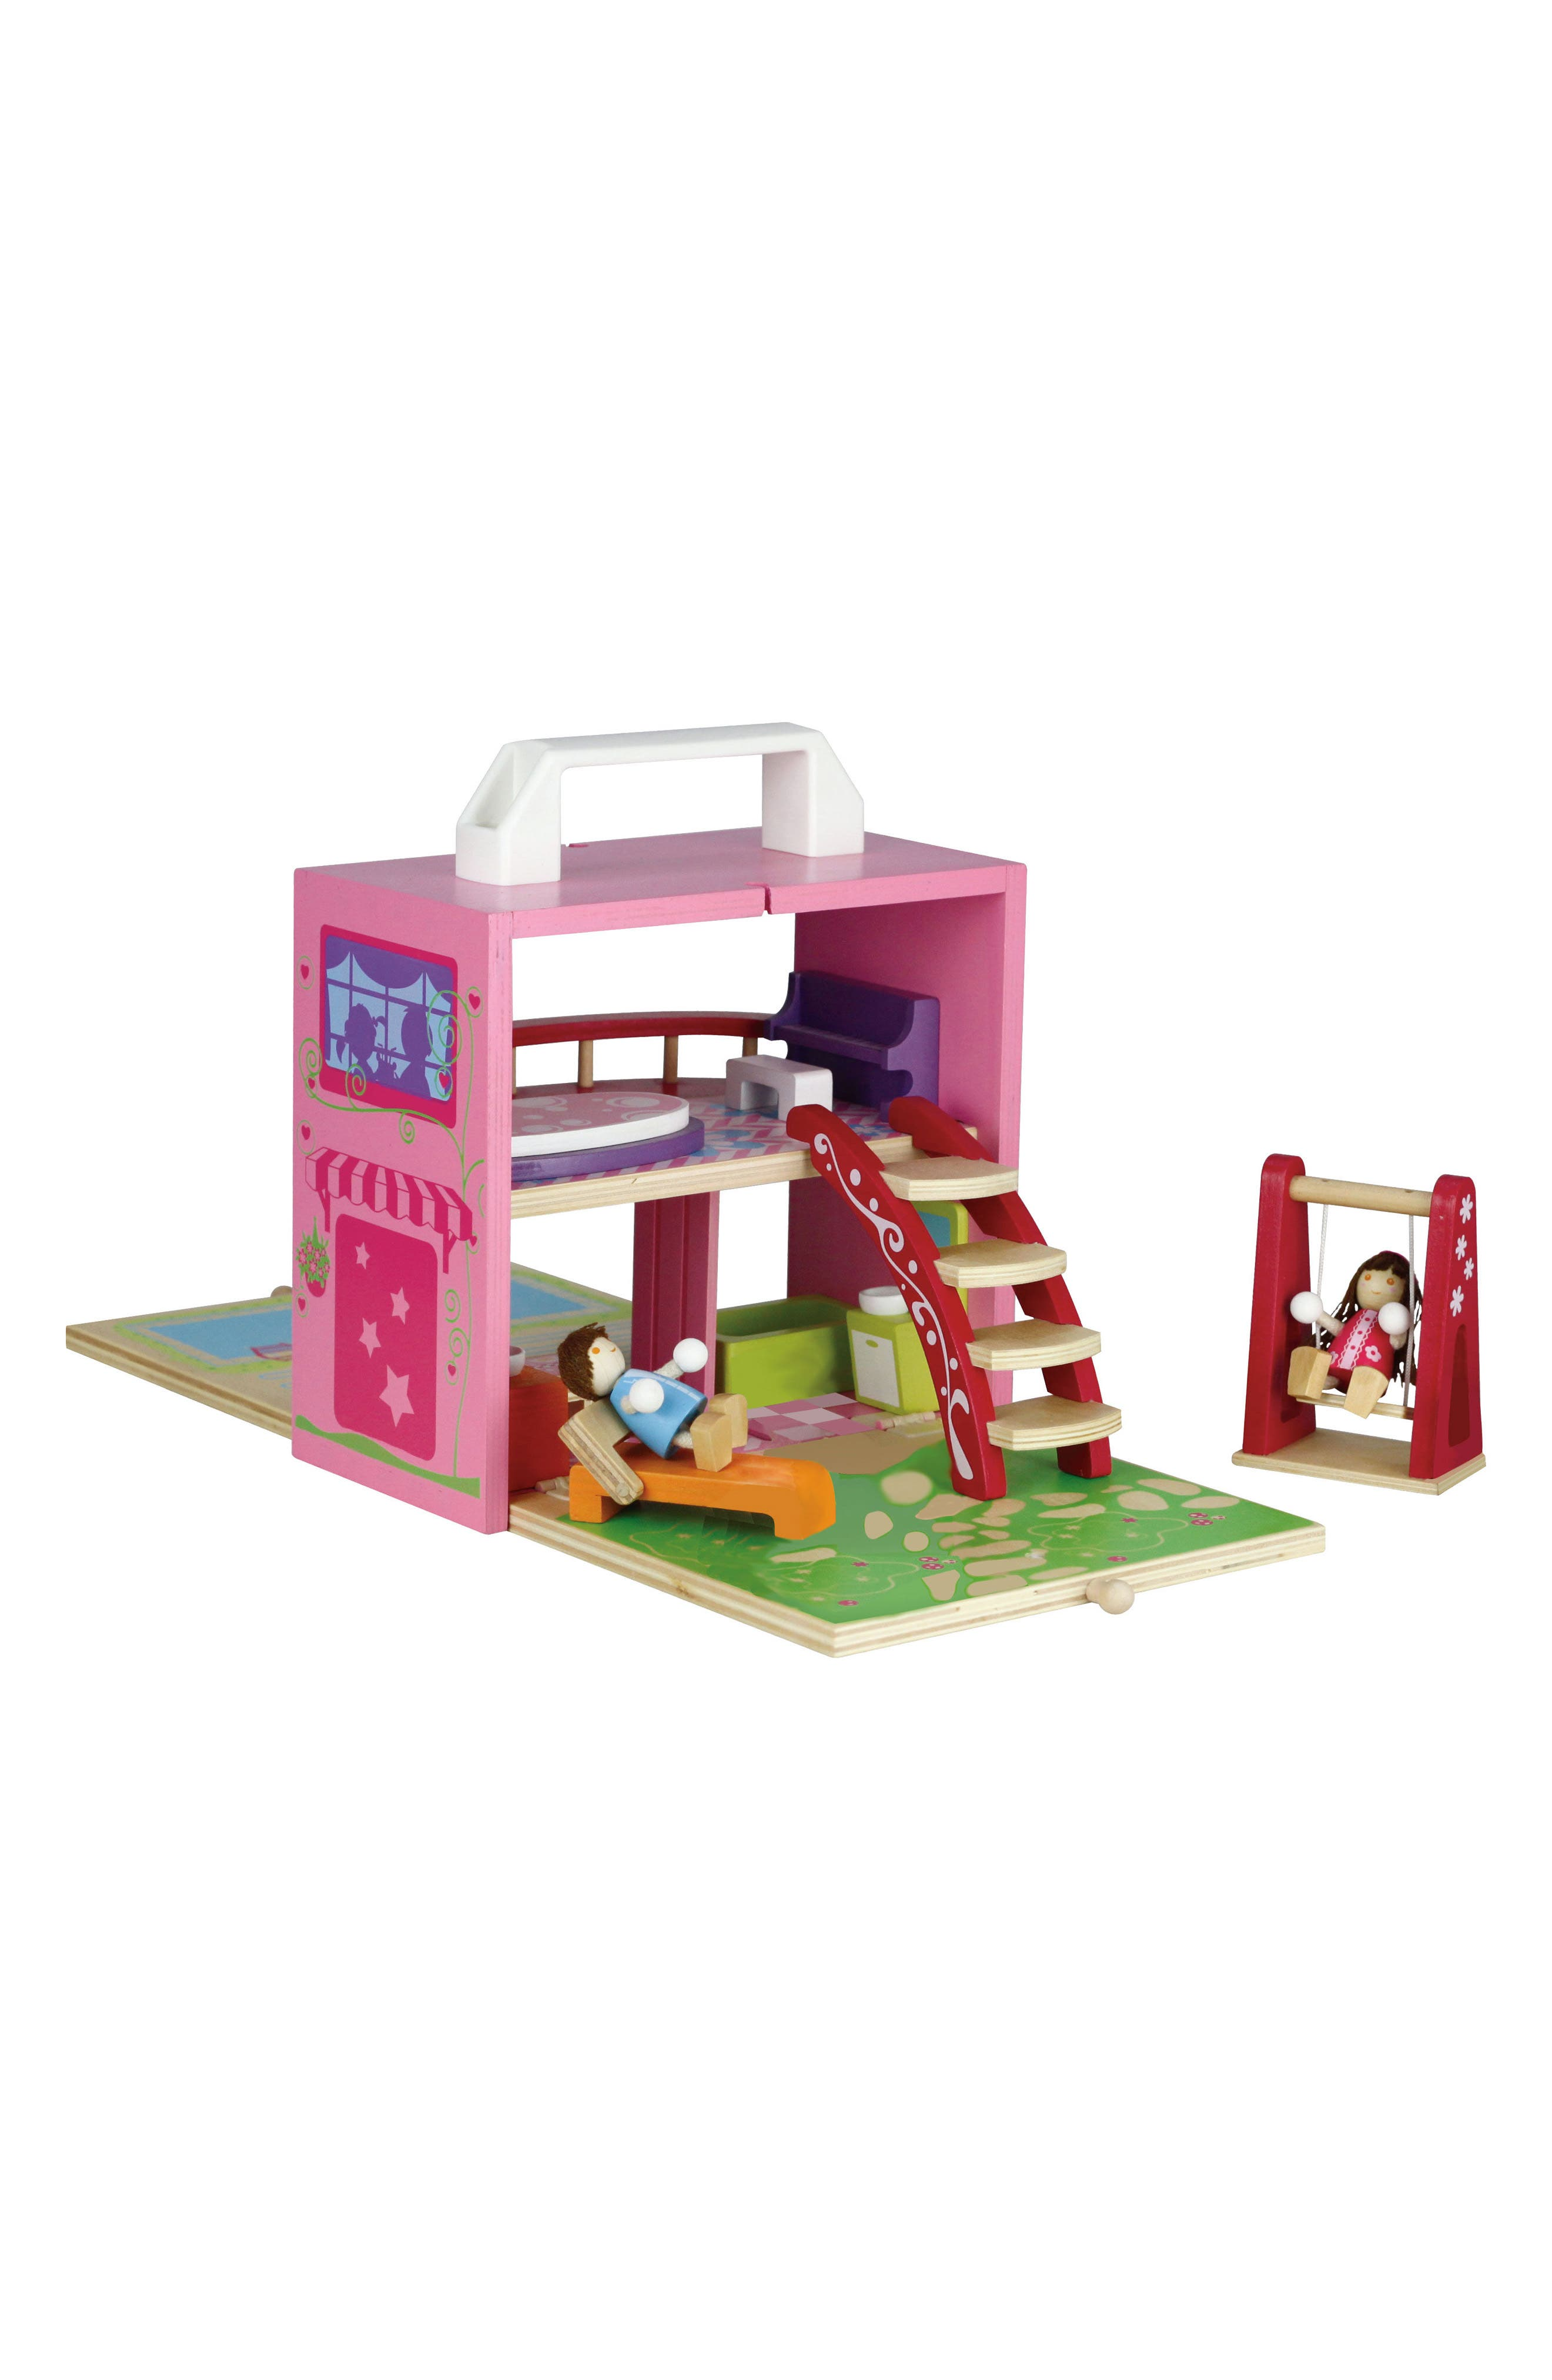 13-Piece Wooden Dollhouse Box Set,                             Main thumbnail 1, color,                             650